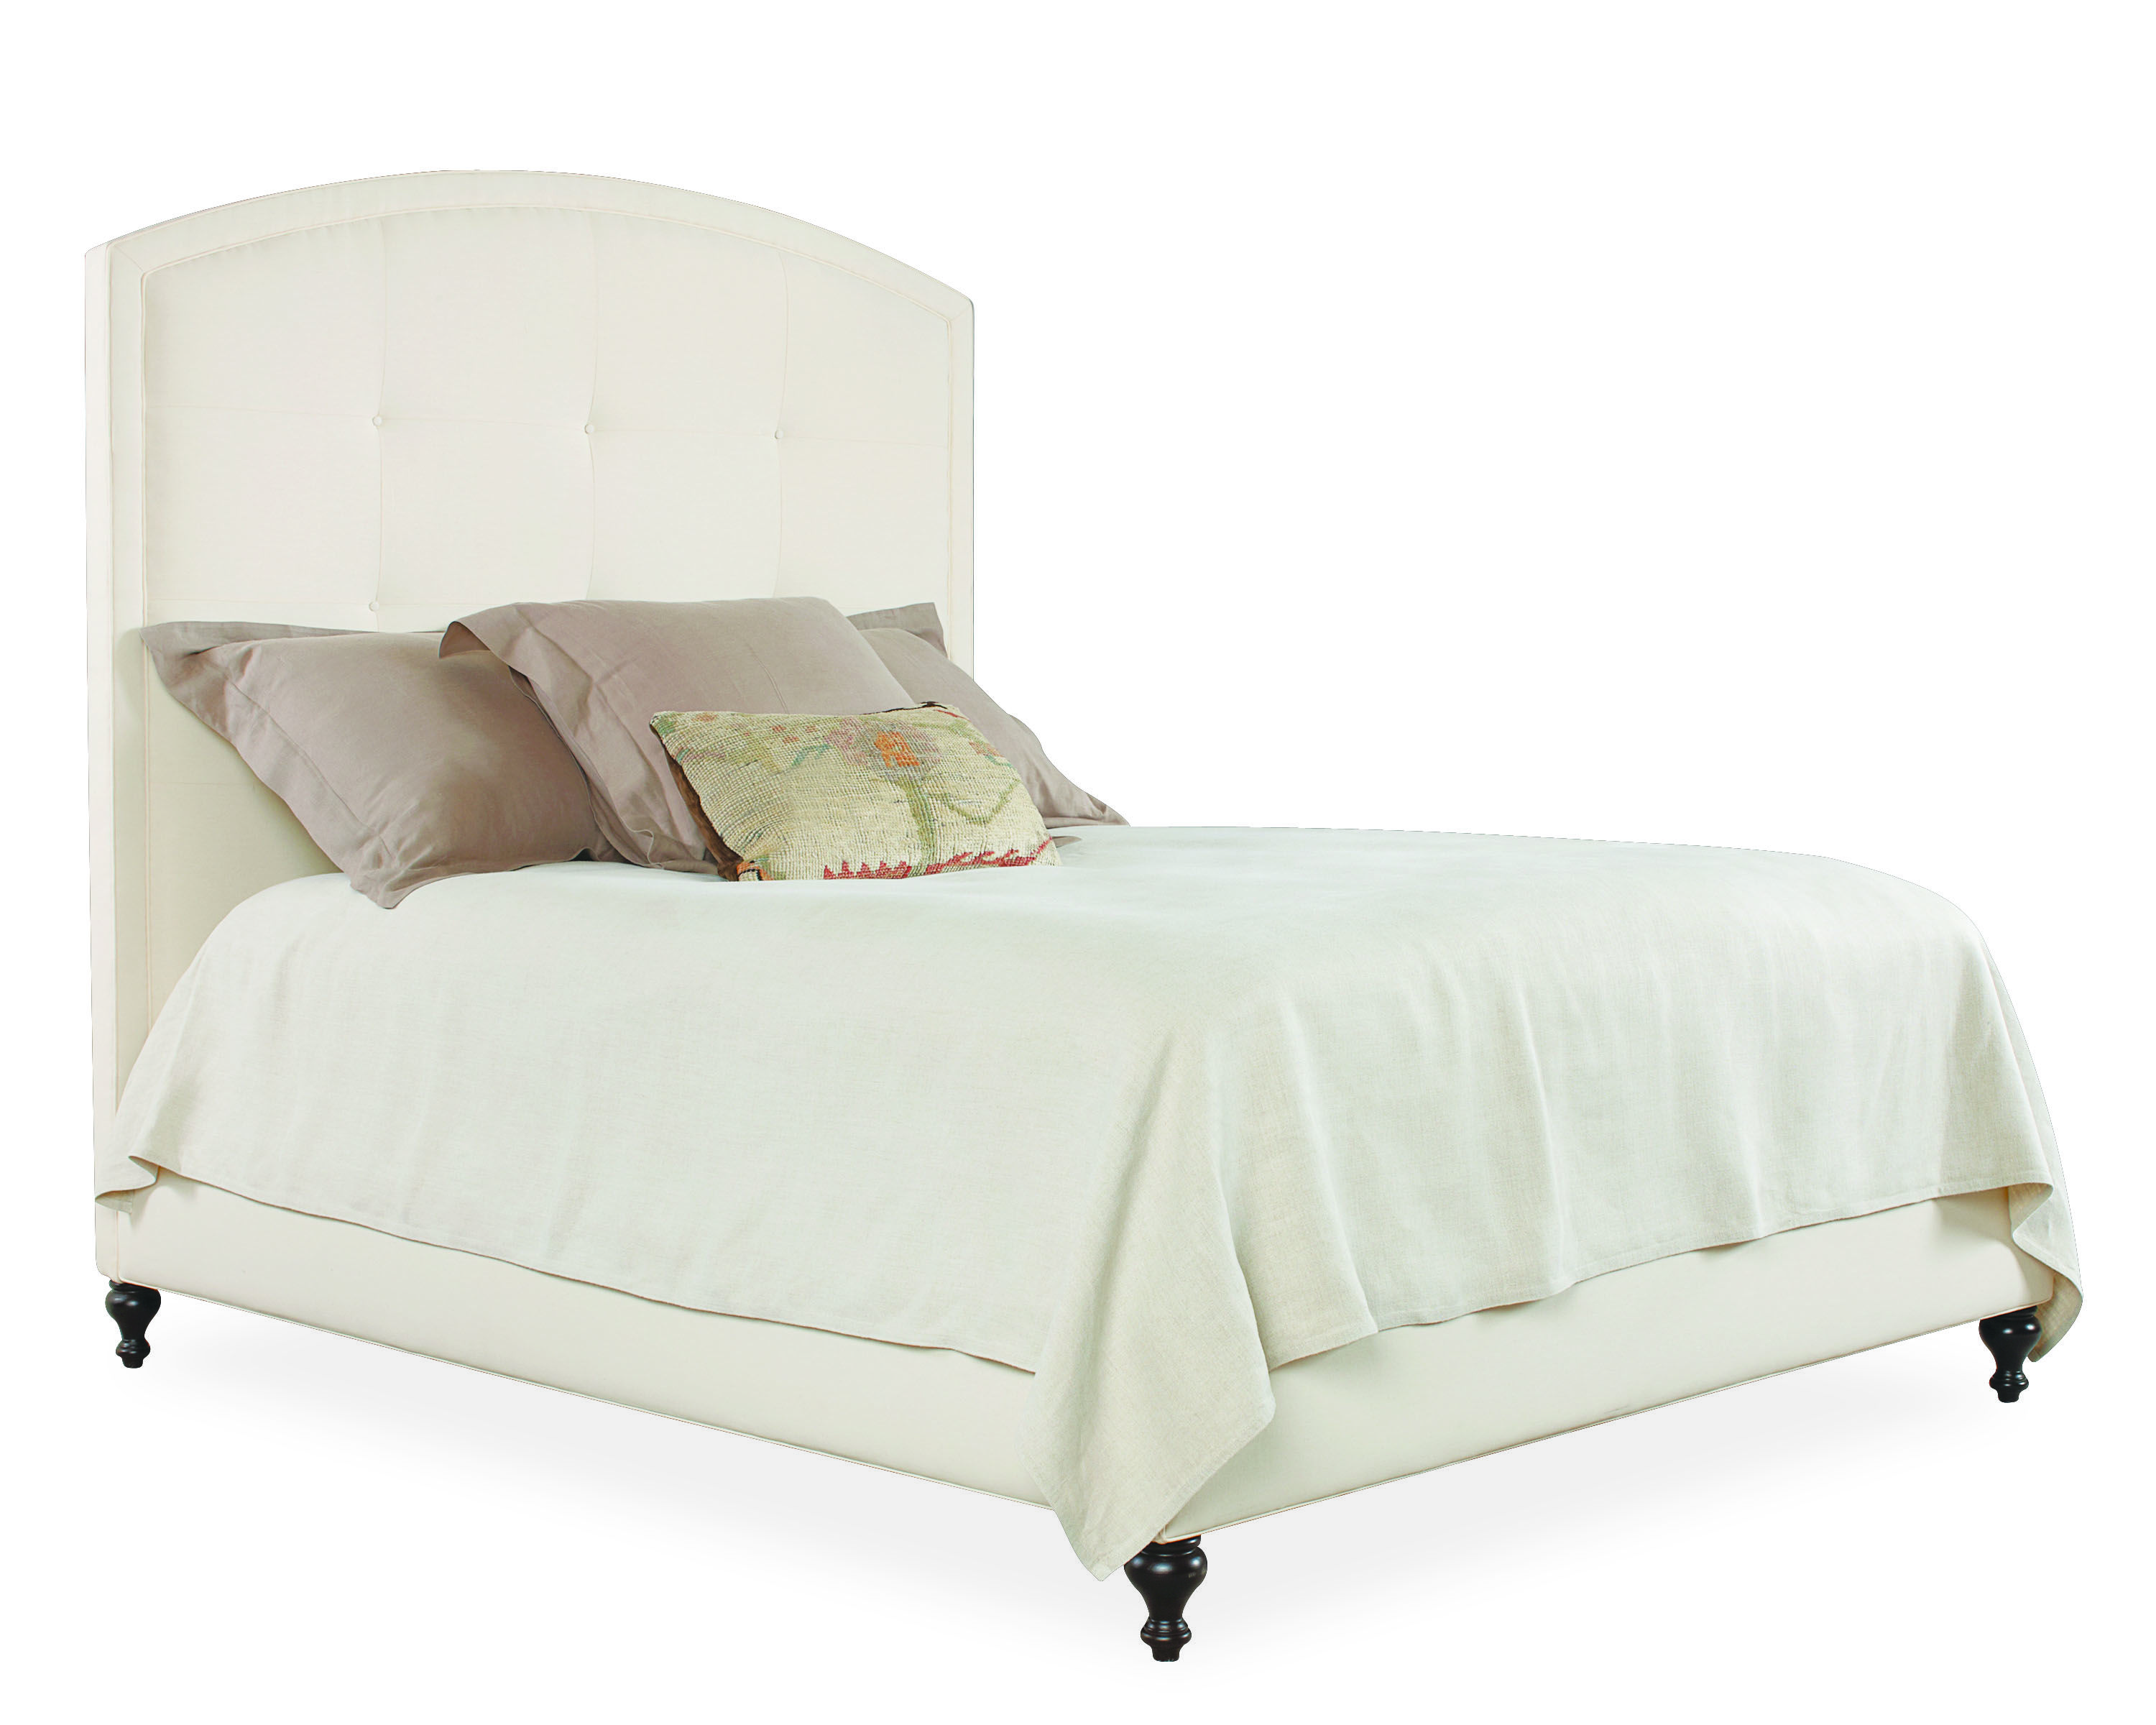 Lee Industries Arch Headboard & Rails Bed